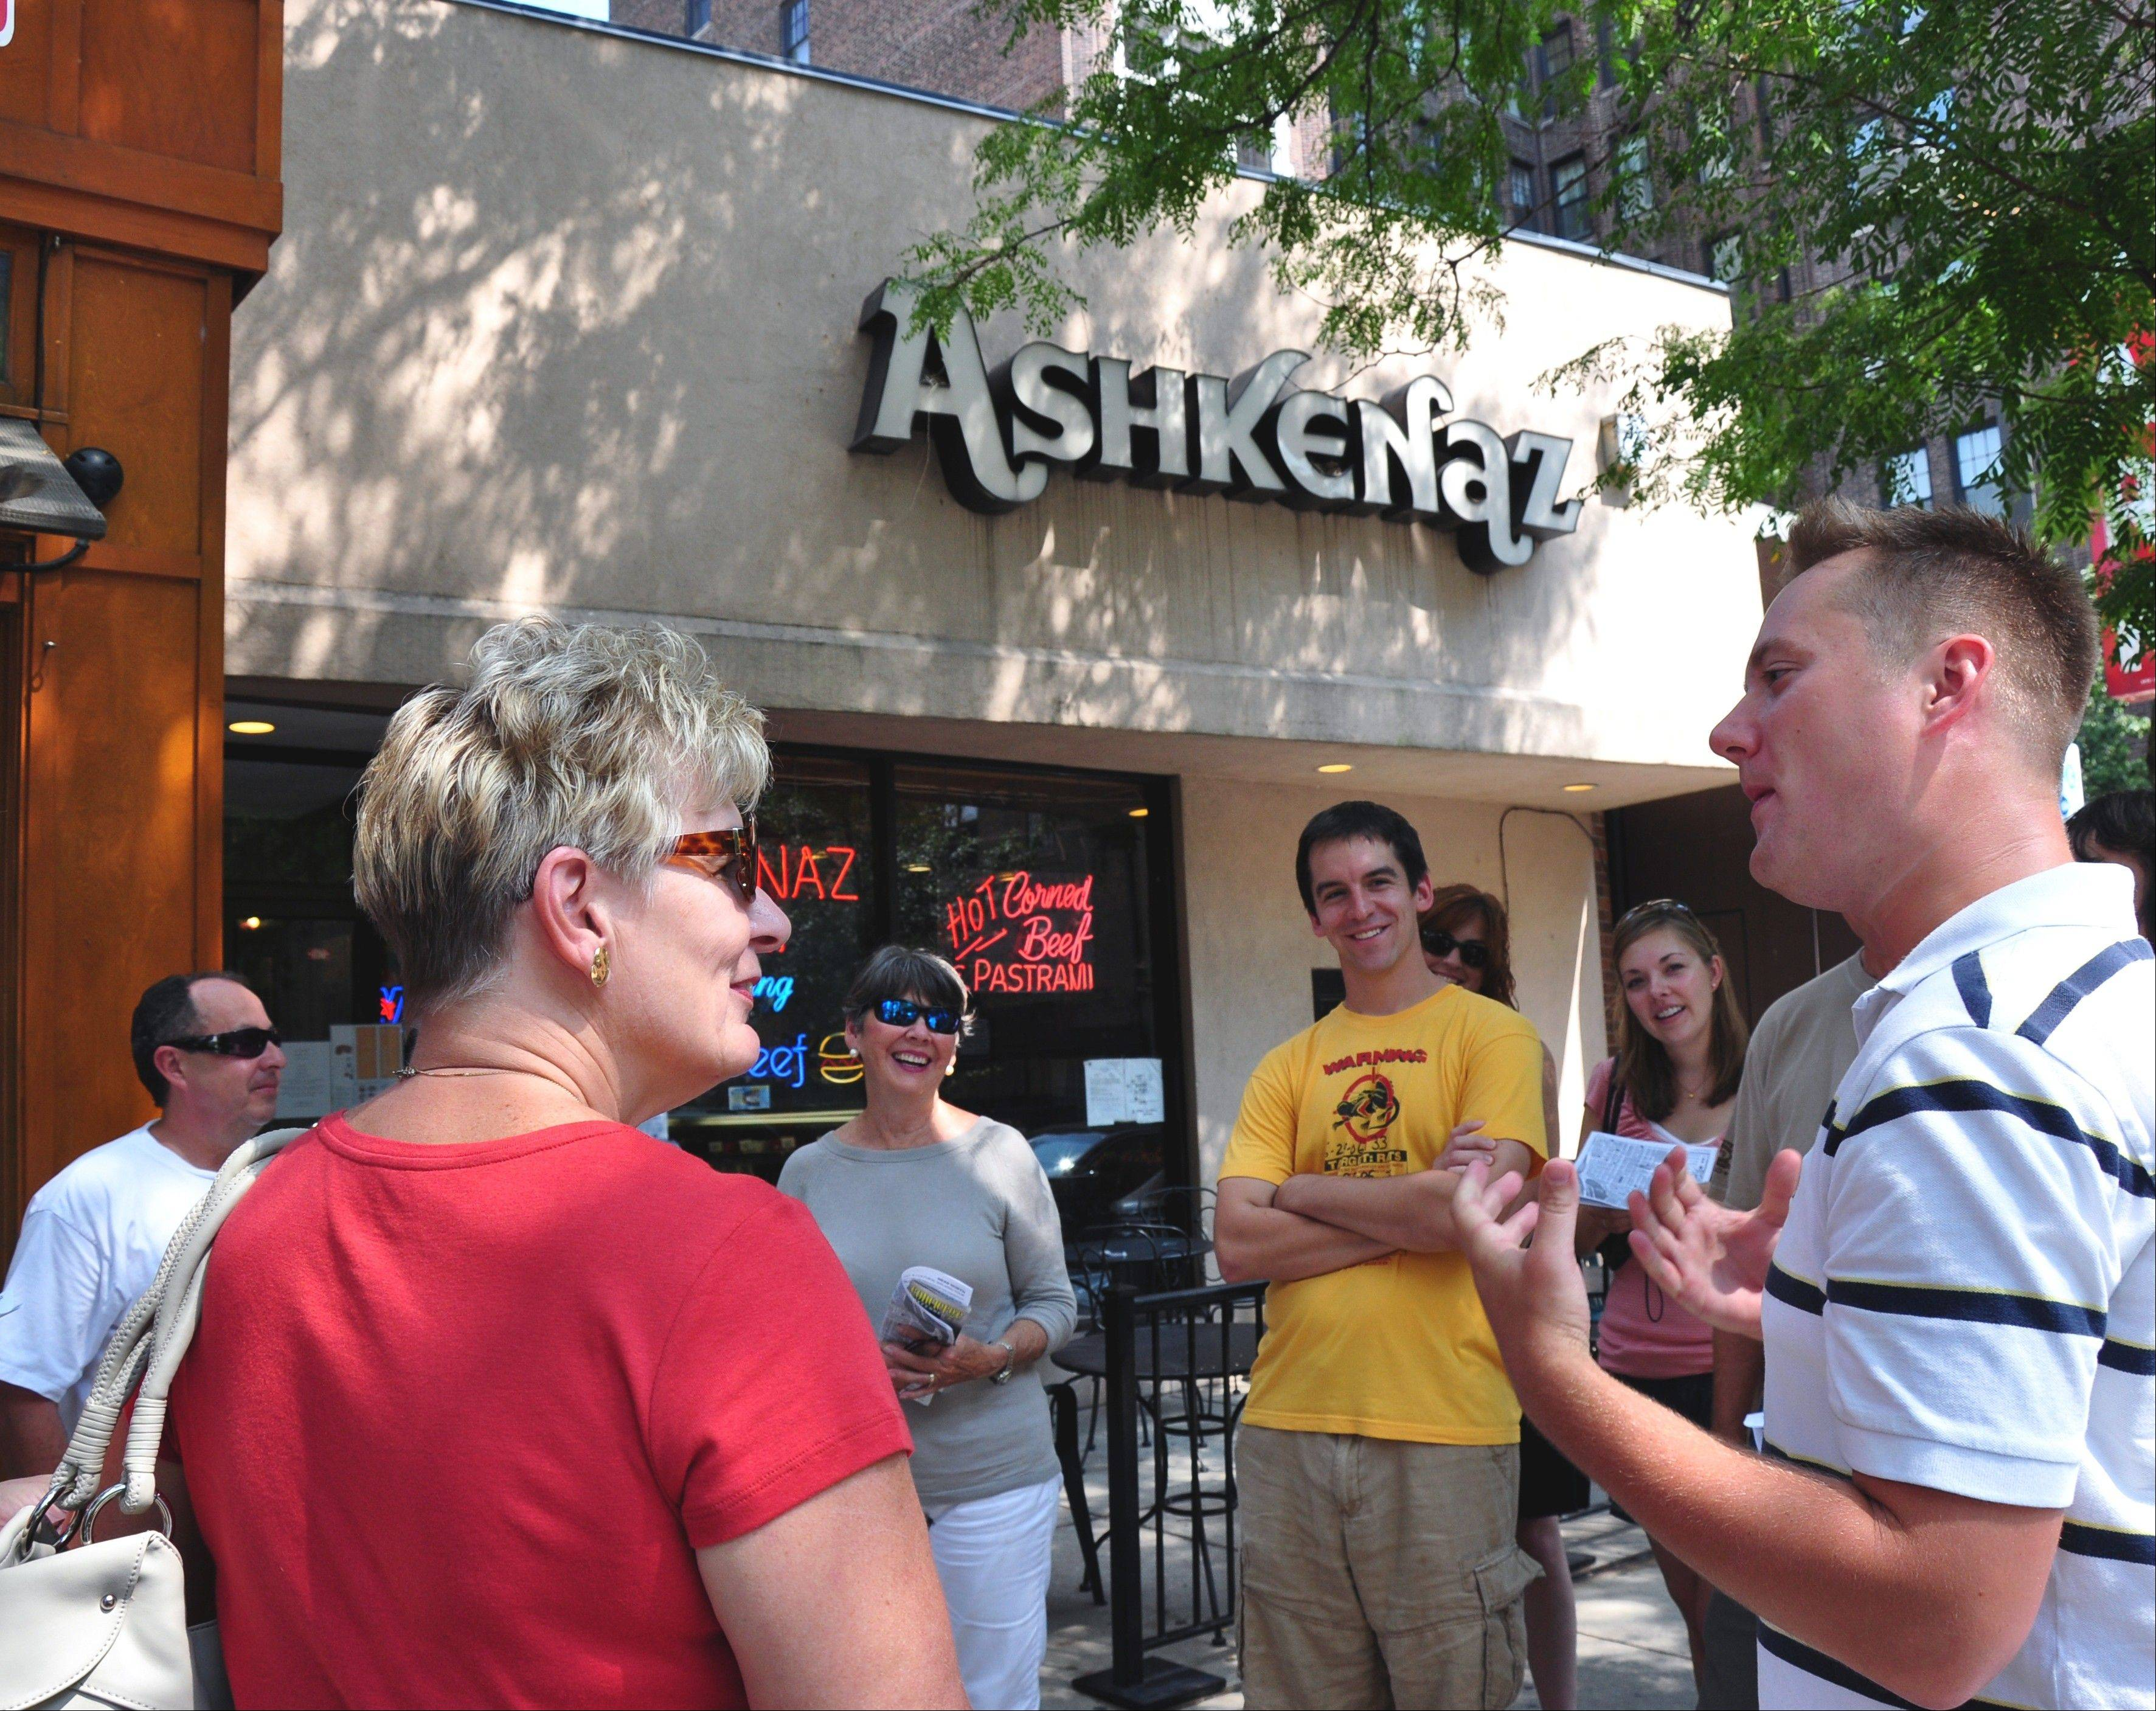 Tour guide Chris White gets a group ready for the Near North tour at Ashkenaz Deli, the first stop on the tour.